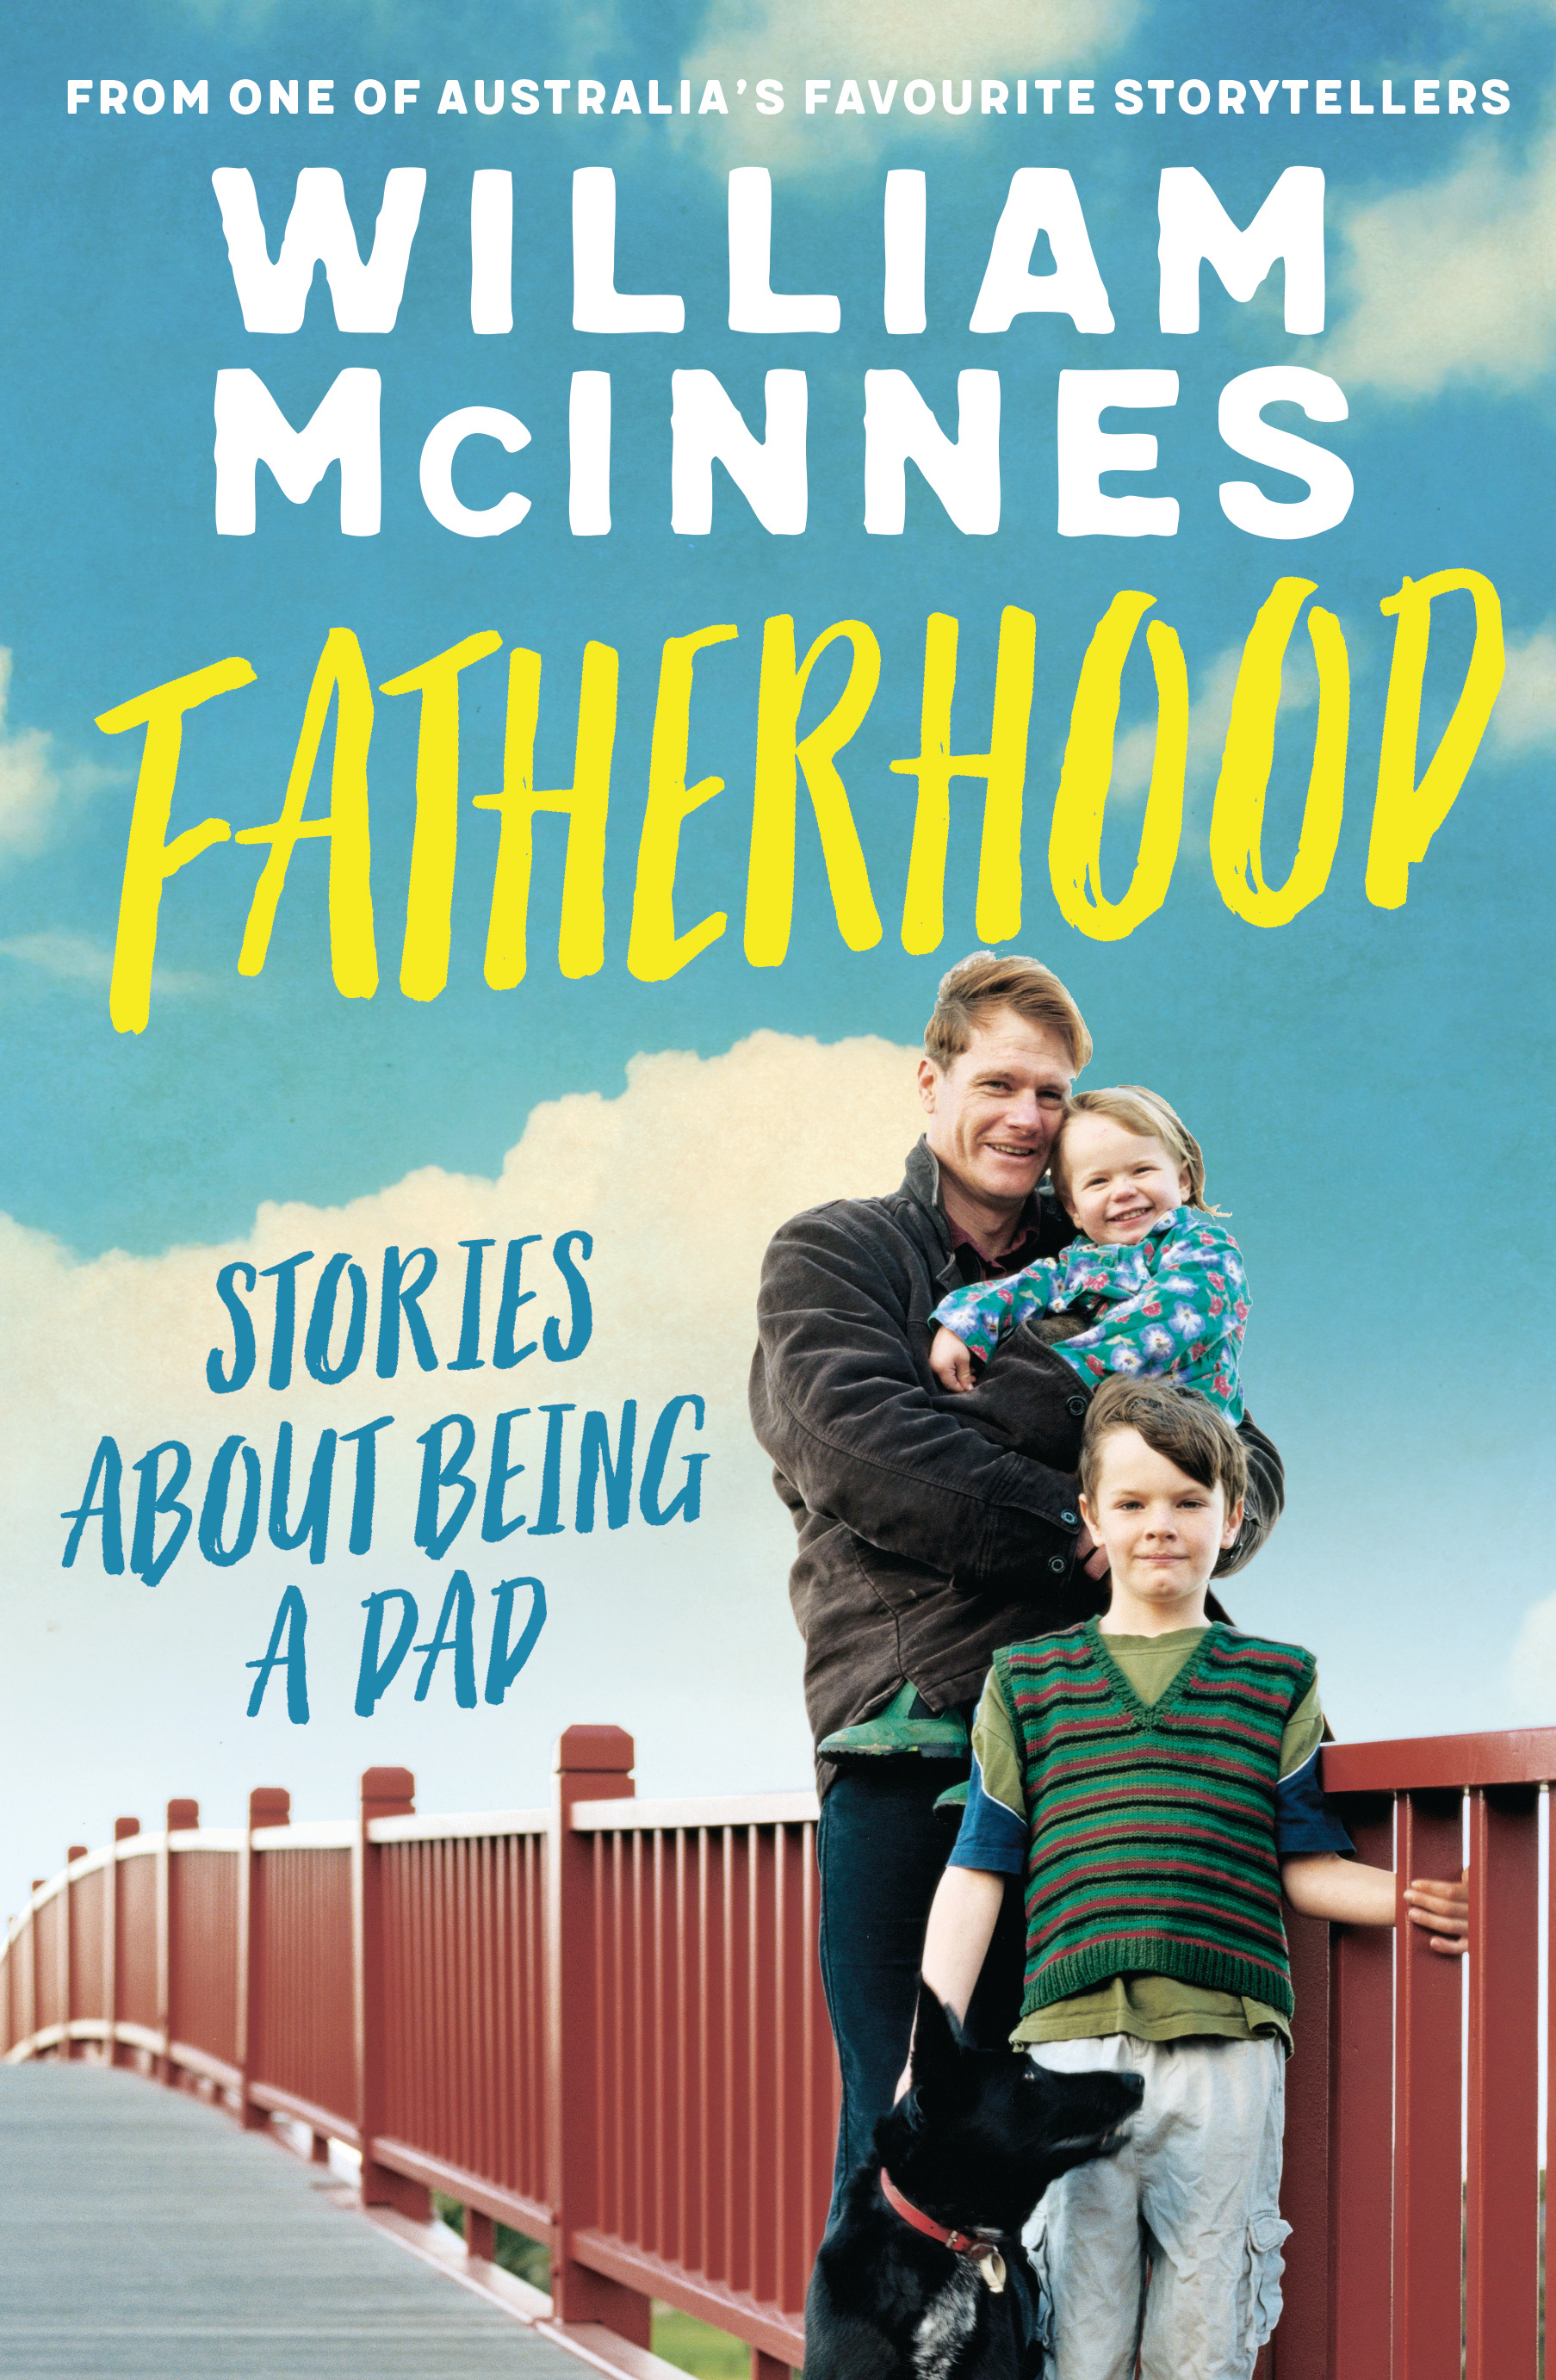 Fatherhood by William McInnes, ISBN: 9780733635540